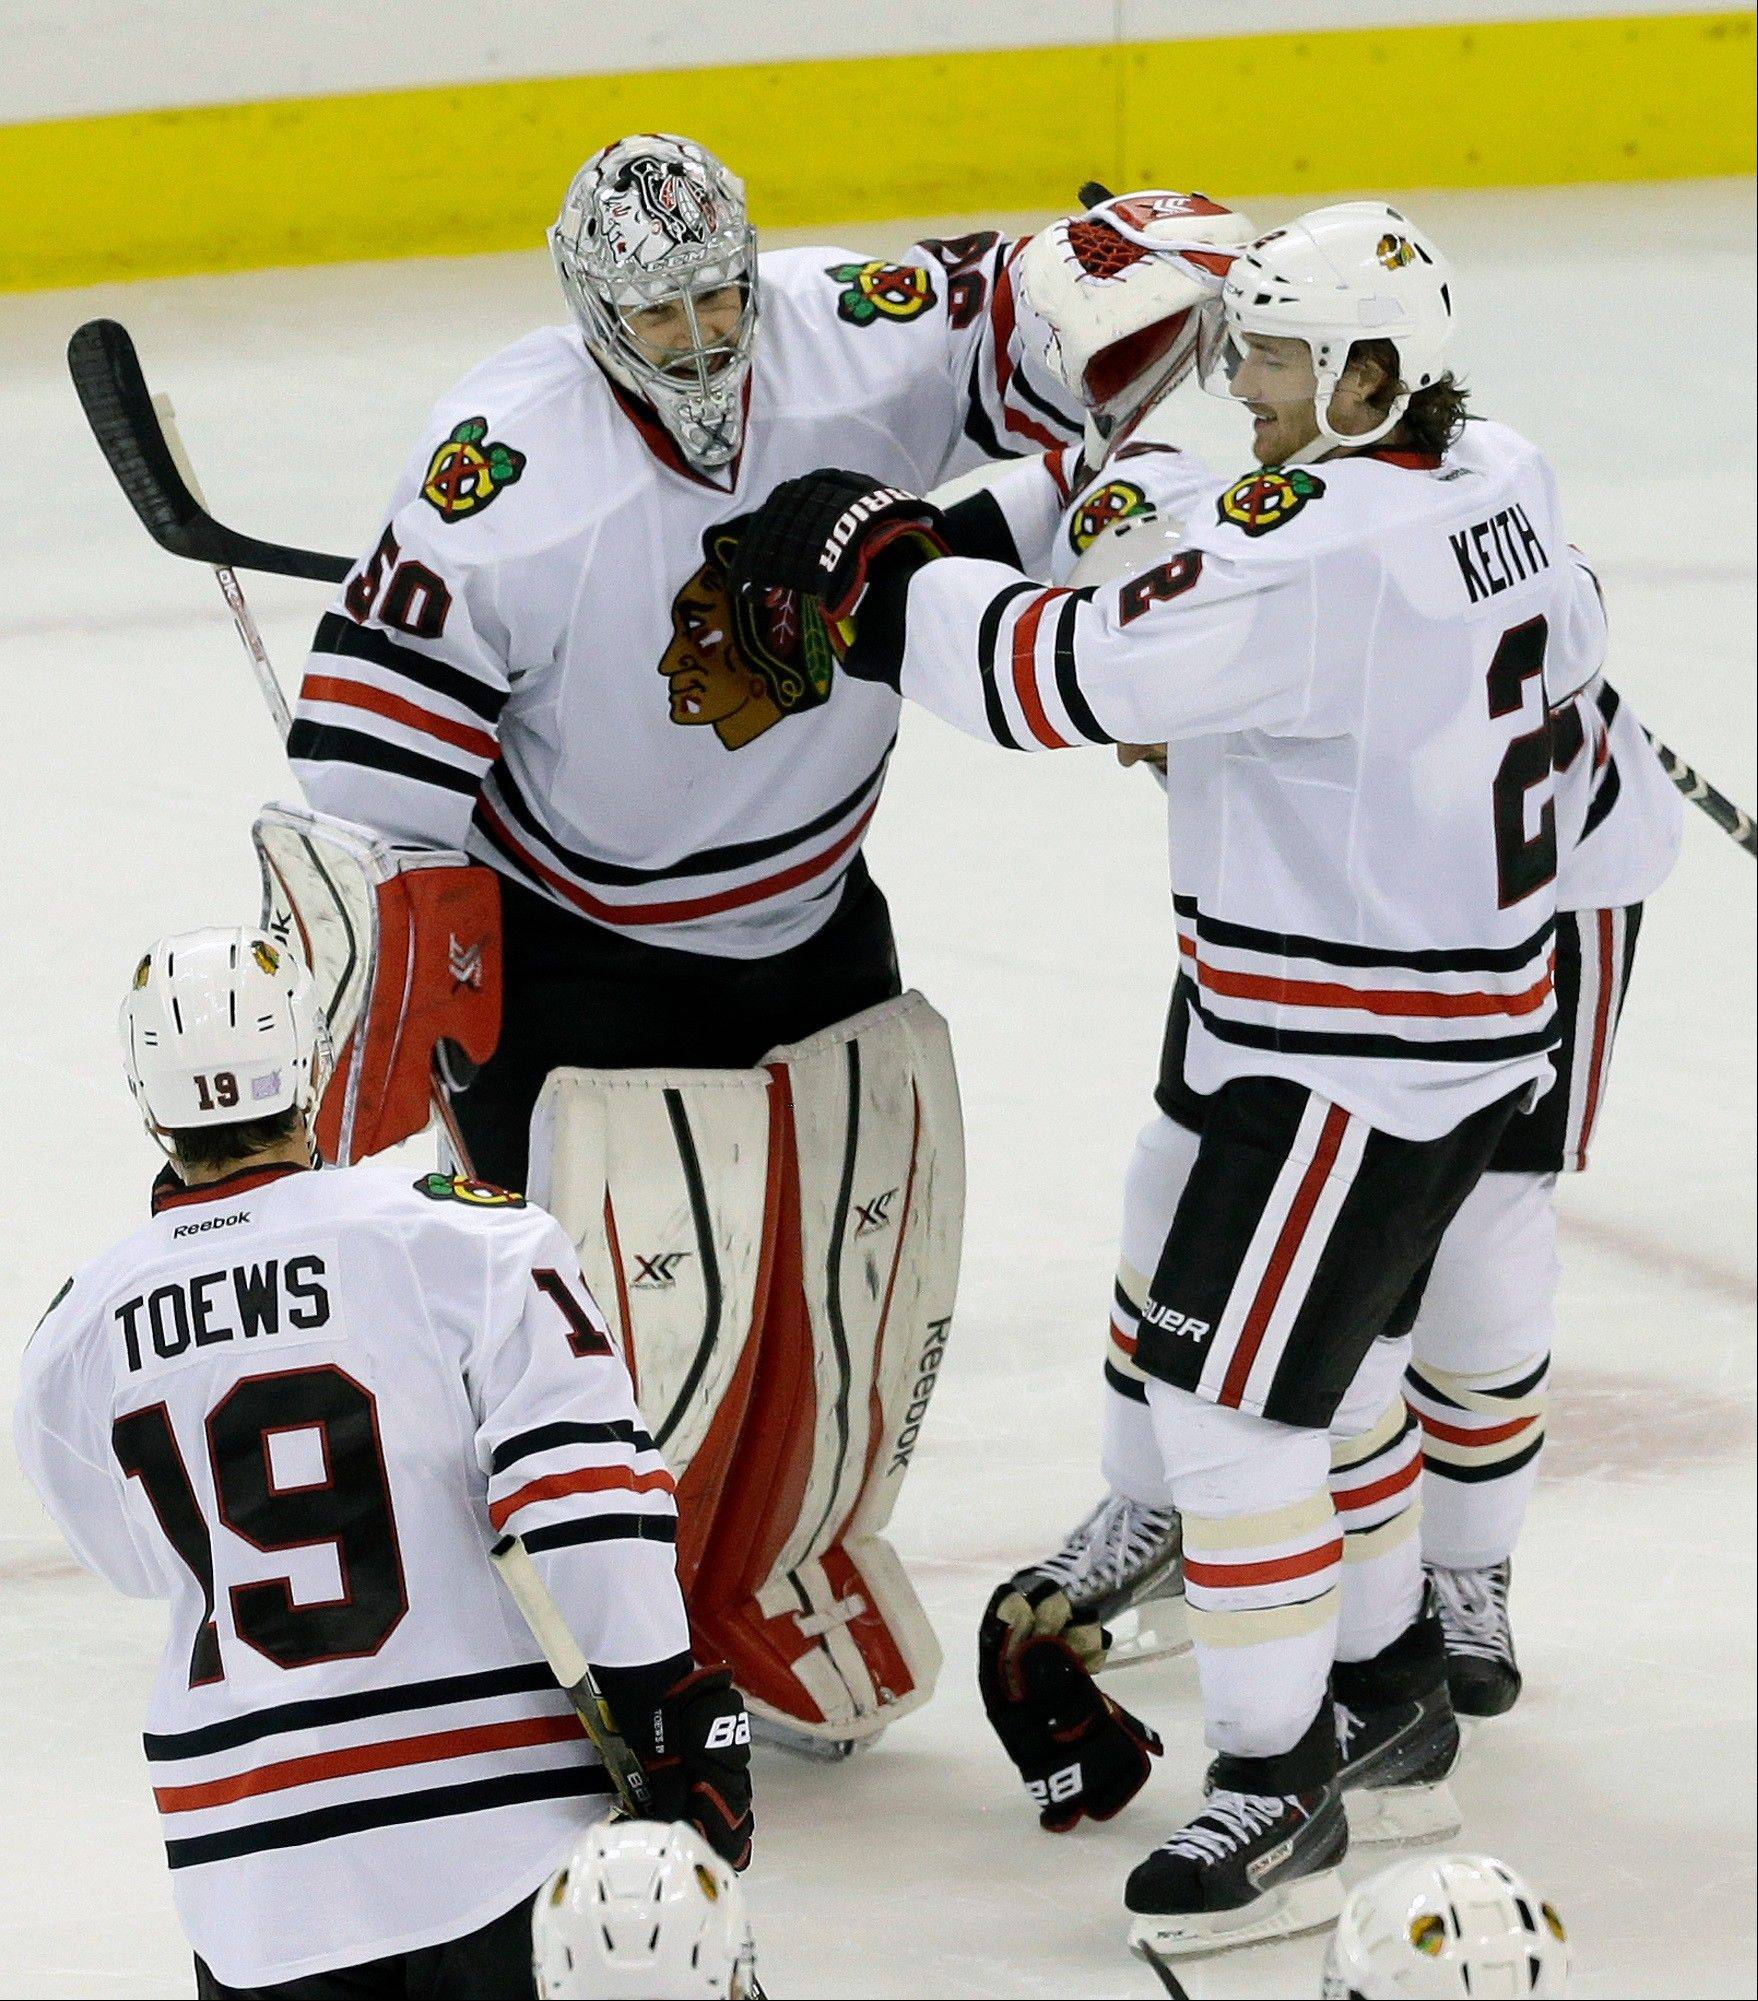 Chicago Blackhawks goalie Corey Crawford (50) is congratulated by Duncan Keith (2) and Jonathan Toews (19) following a shootout during an NHL hockey game against the Carolina Hurricanes in Raleigh, N.C., Tuesday, Oct. 15, 2013. Chicago won 3-2. (AP Photo/Gerry Broome)